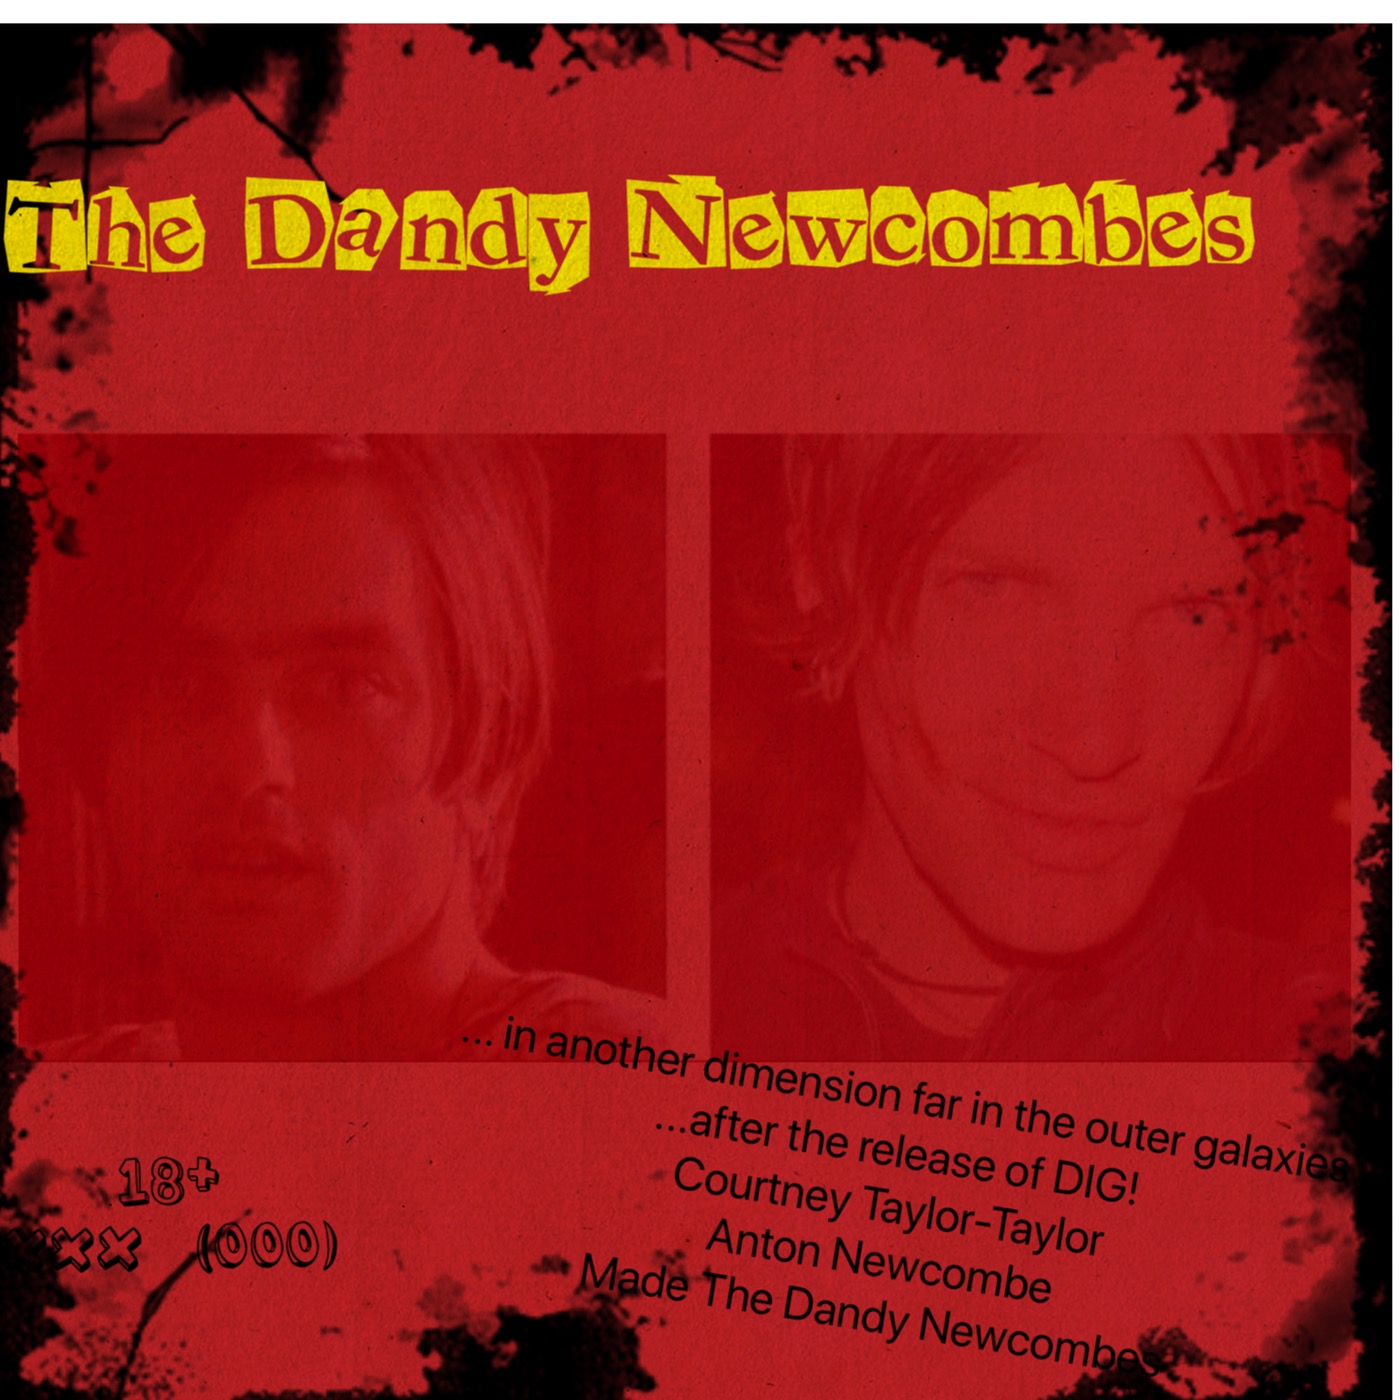 Courtney Taylor-Taylor Anton Newcombe, Neo Psychedelic, Neo Psych, The Kundalini Genie, Melting Mallows, The Casey Jr. Ride, The Dandy Newcombes